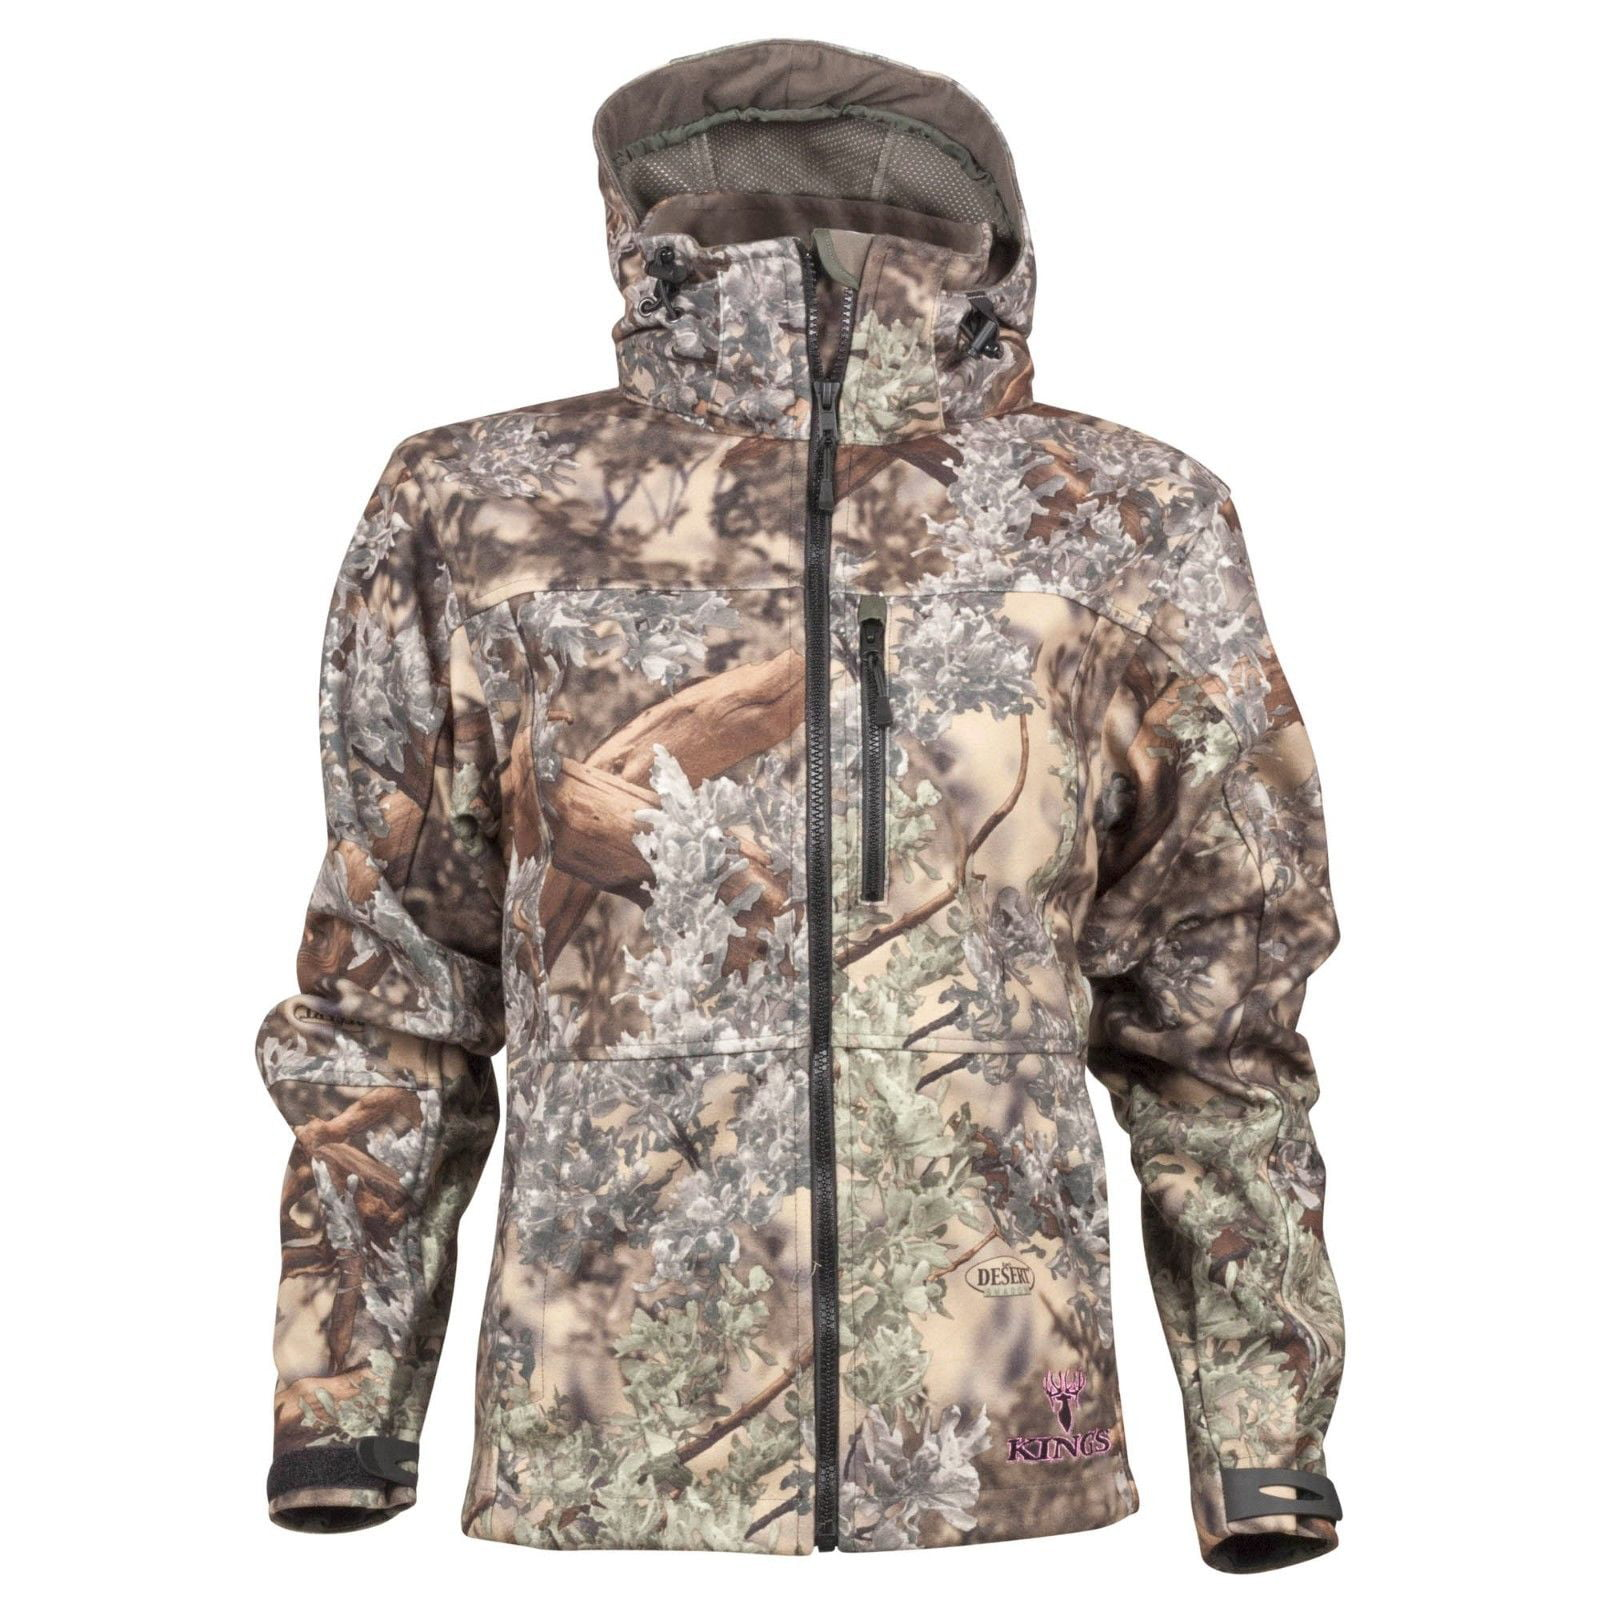 King's Camo Women's Wind Defender Fleece Jacket Desert Shadow by